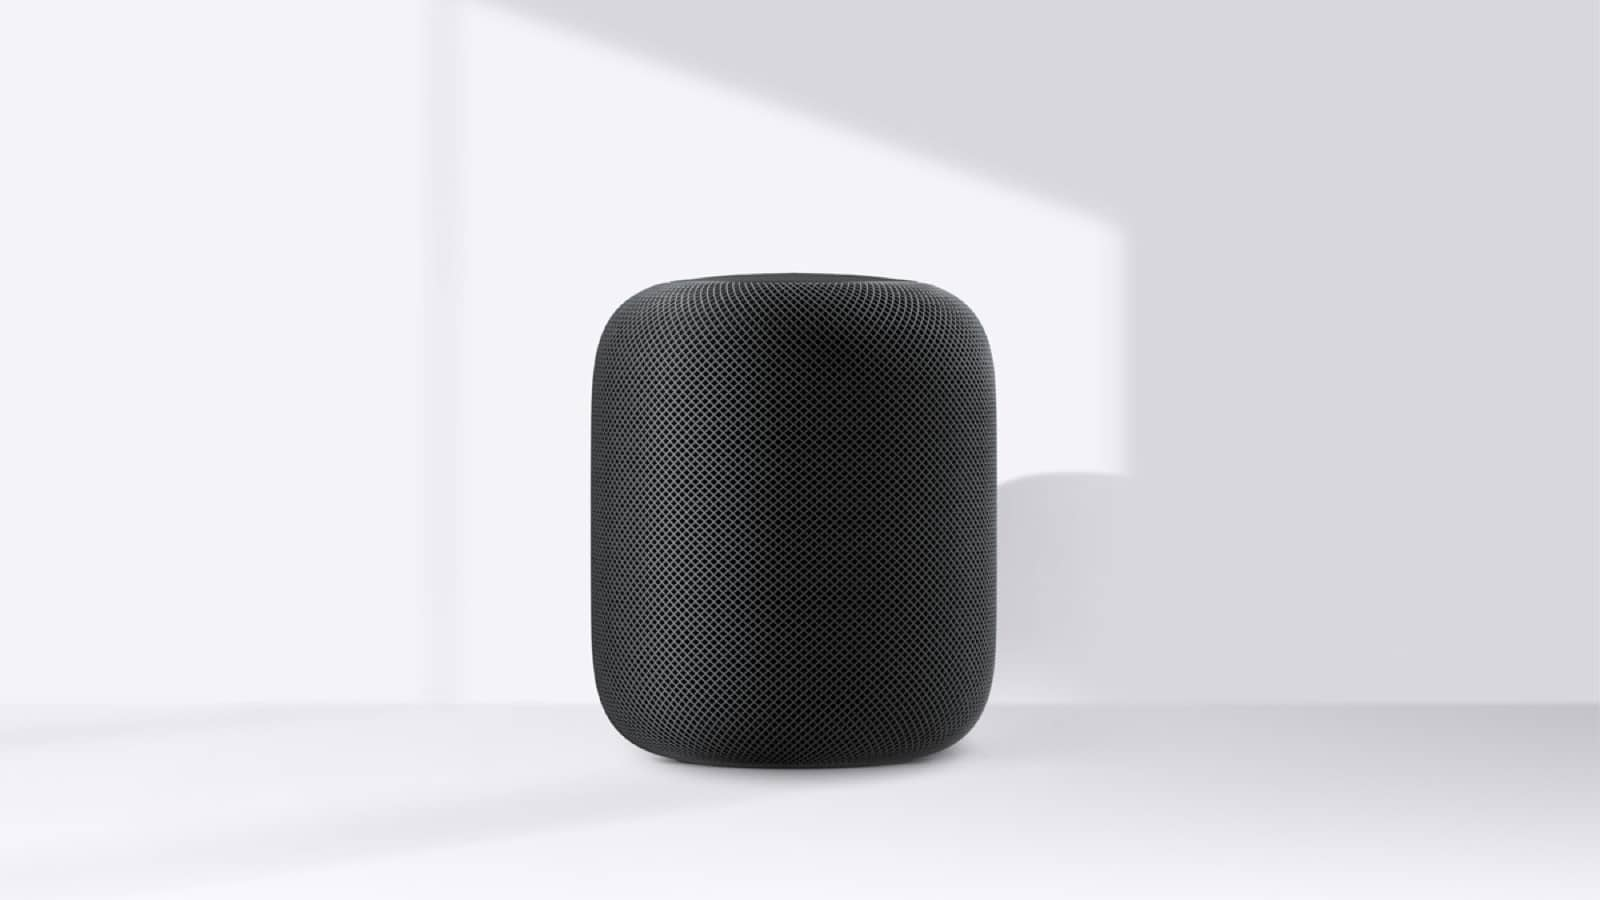 Image of HomePod, which got a HomePod firmware update recently.